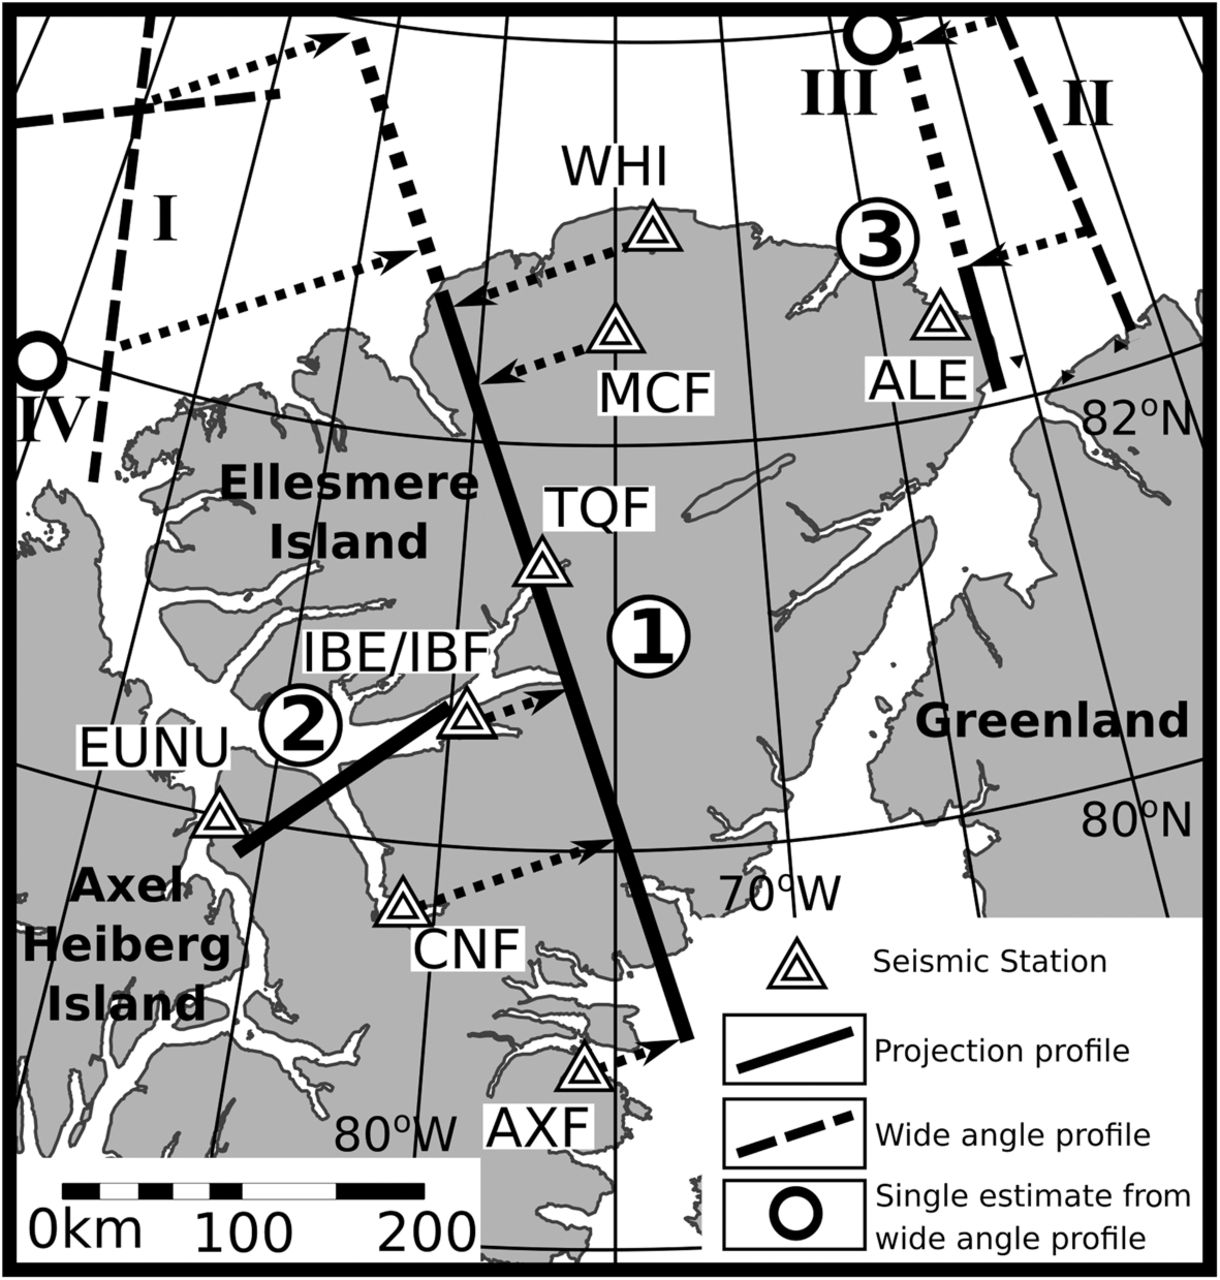 hight resolution of regional crustal architecture of ellesmere island arctic canada earth system geosphere hr diagram earth science